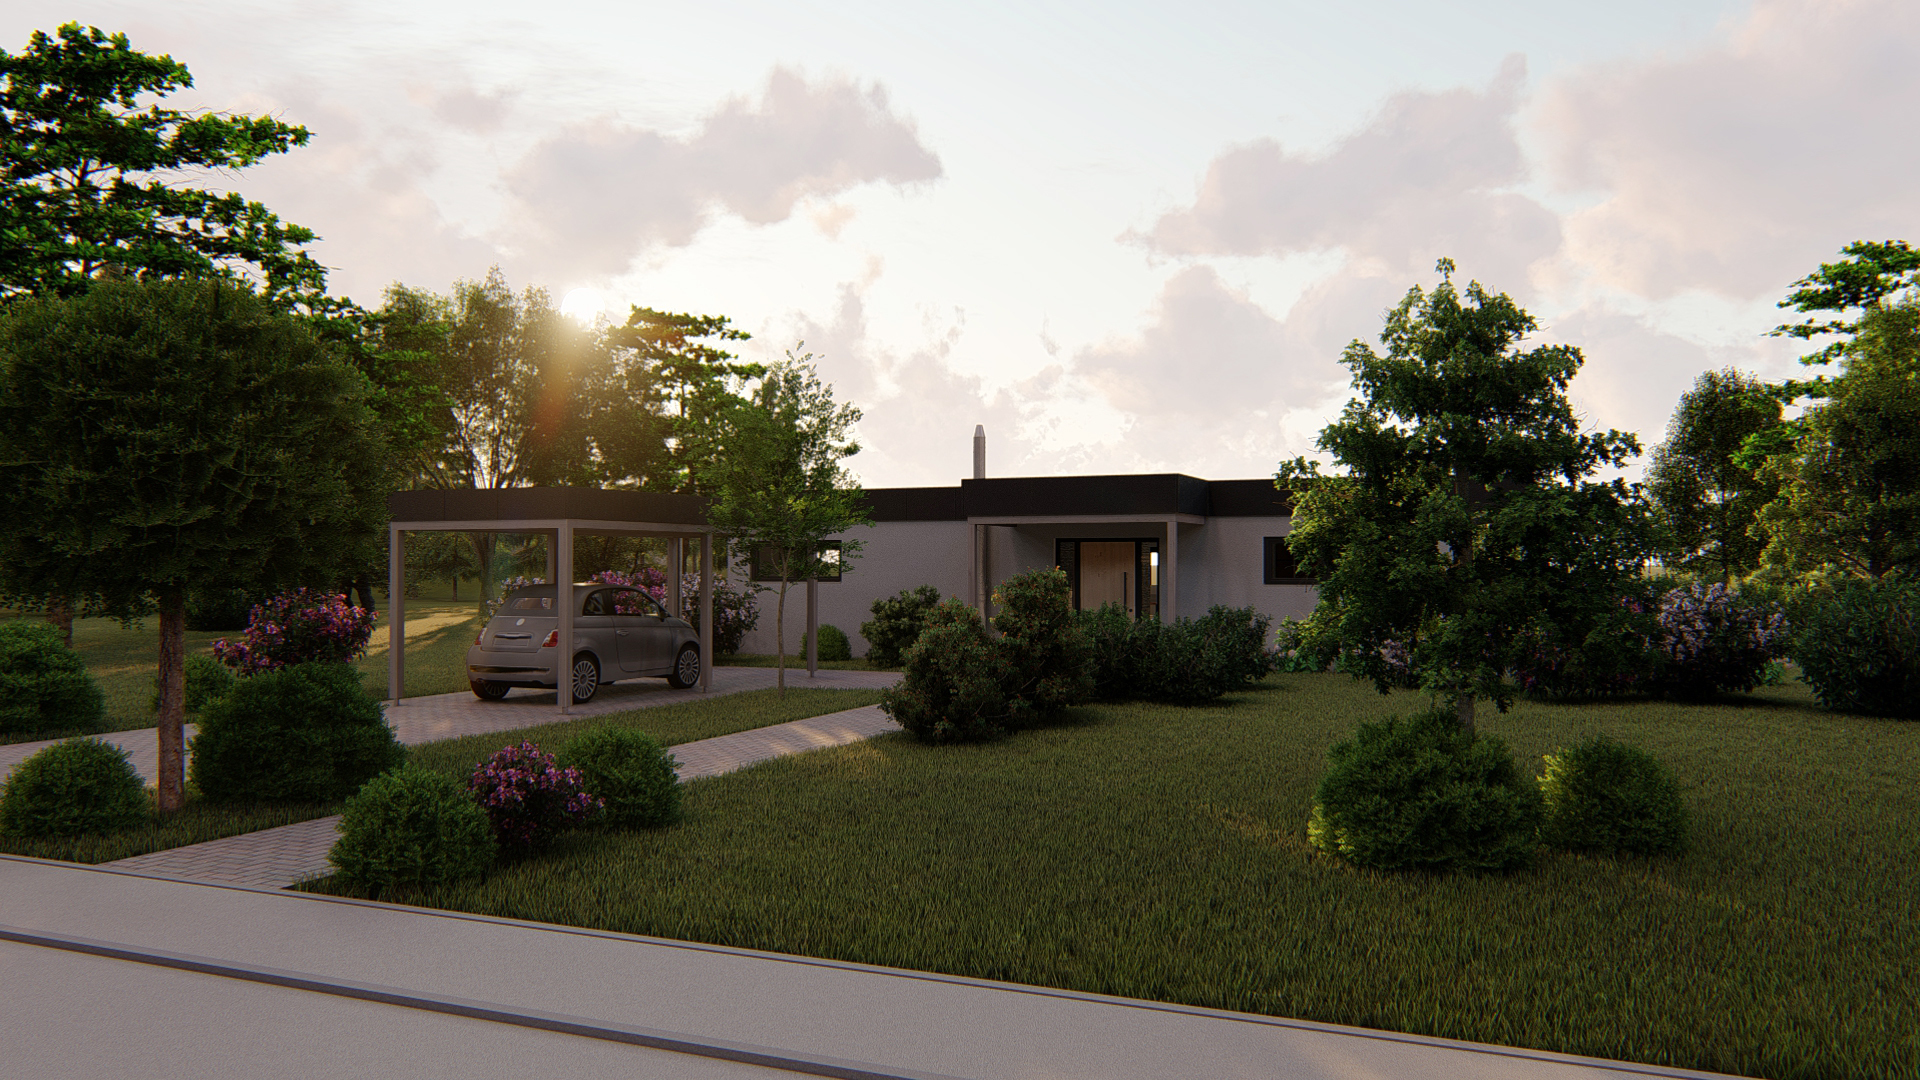 """My """"Little Vacation House"""" - Modeling and Rendering"""